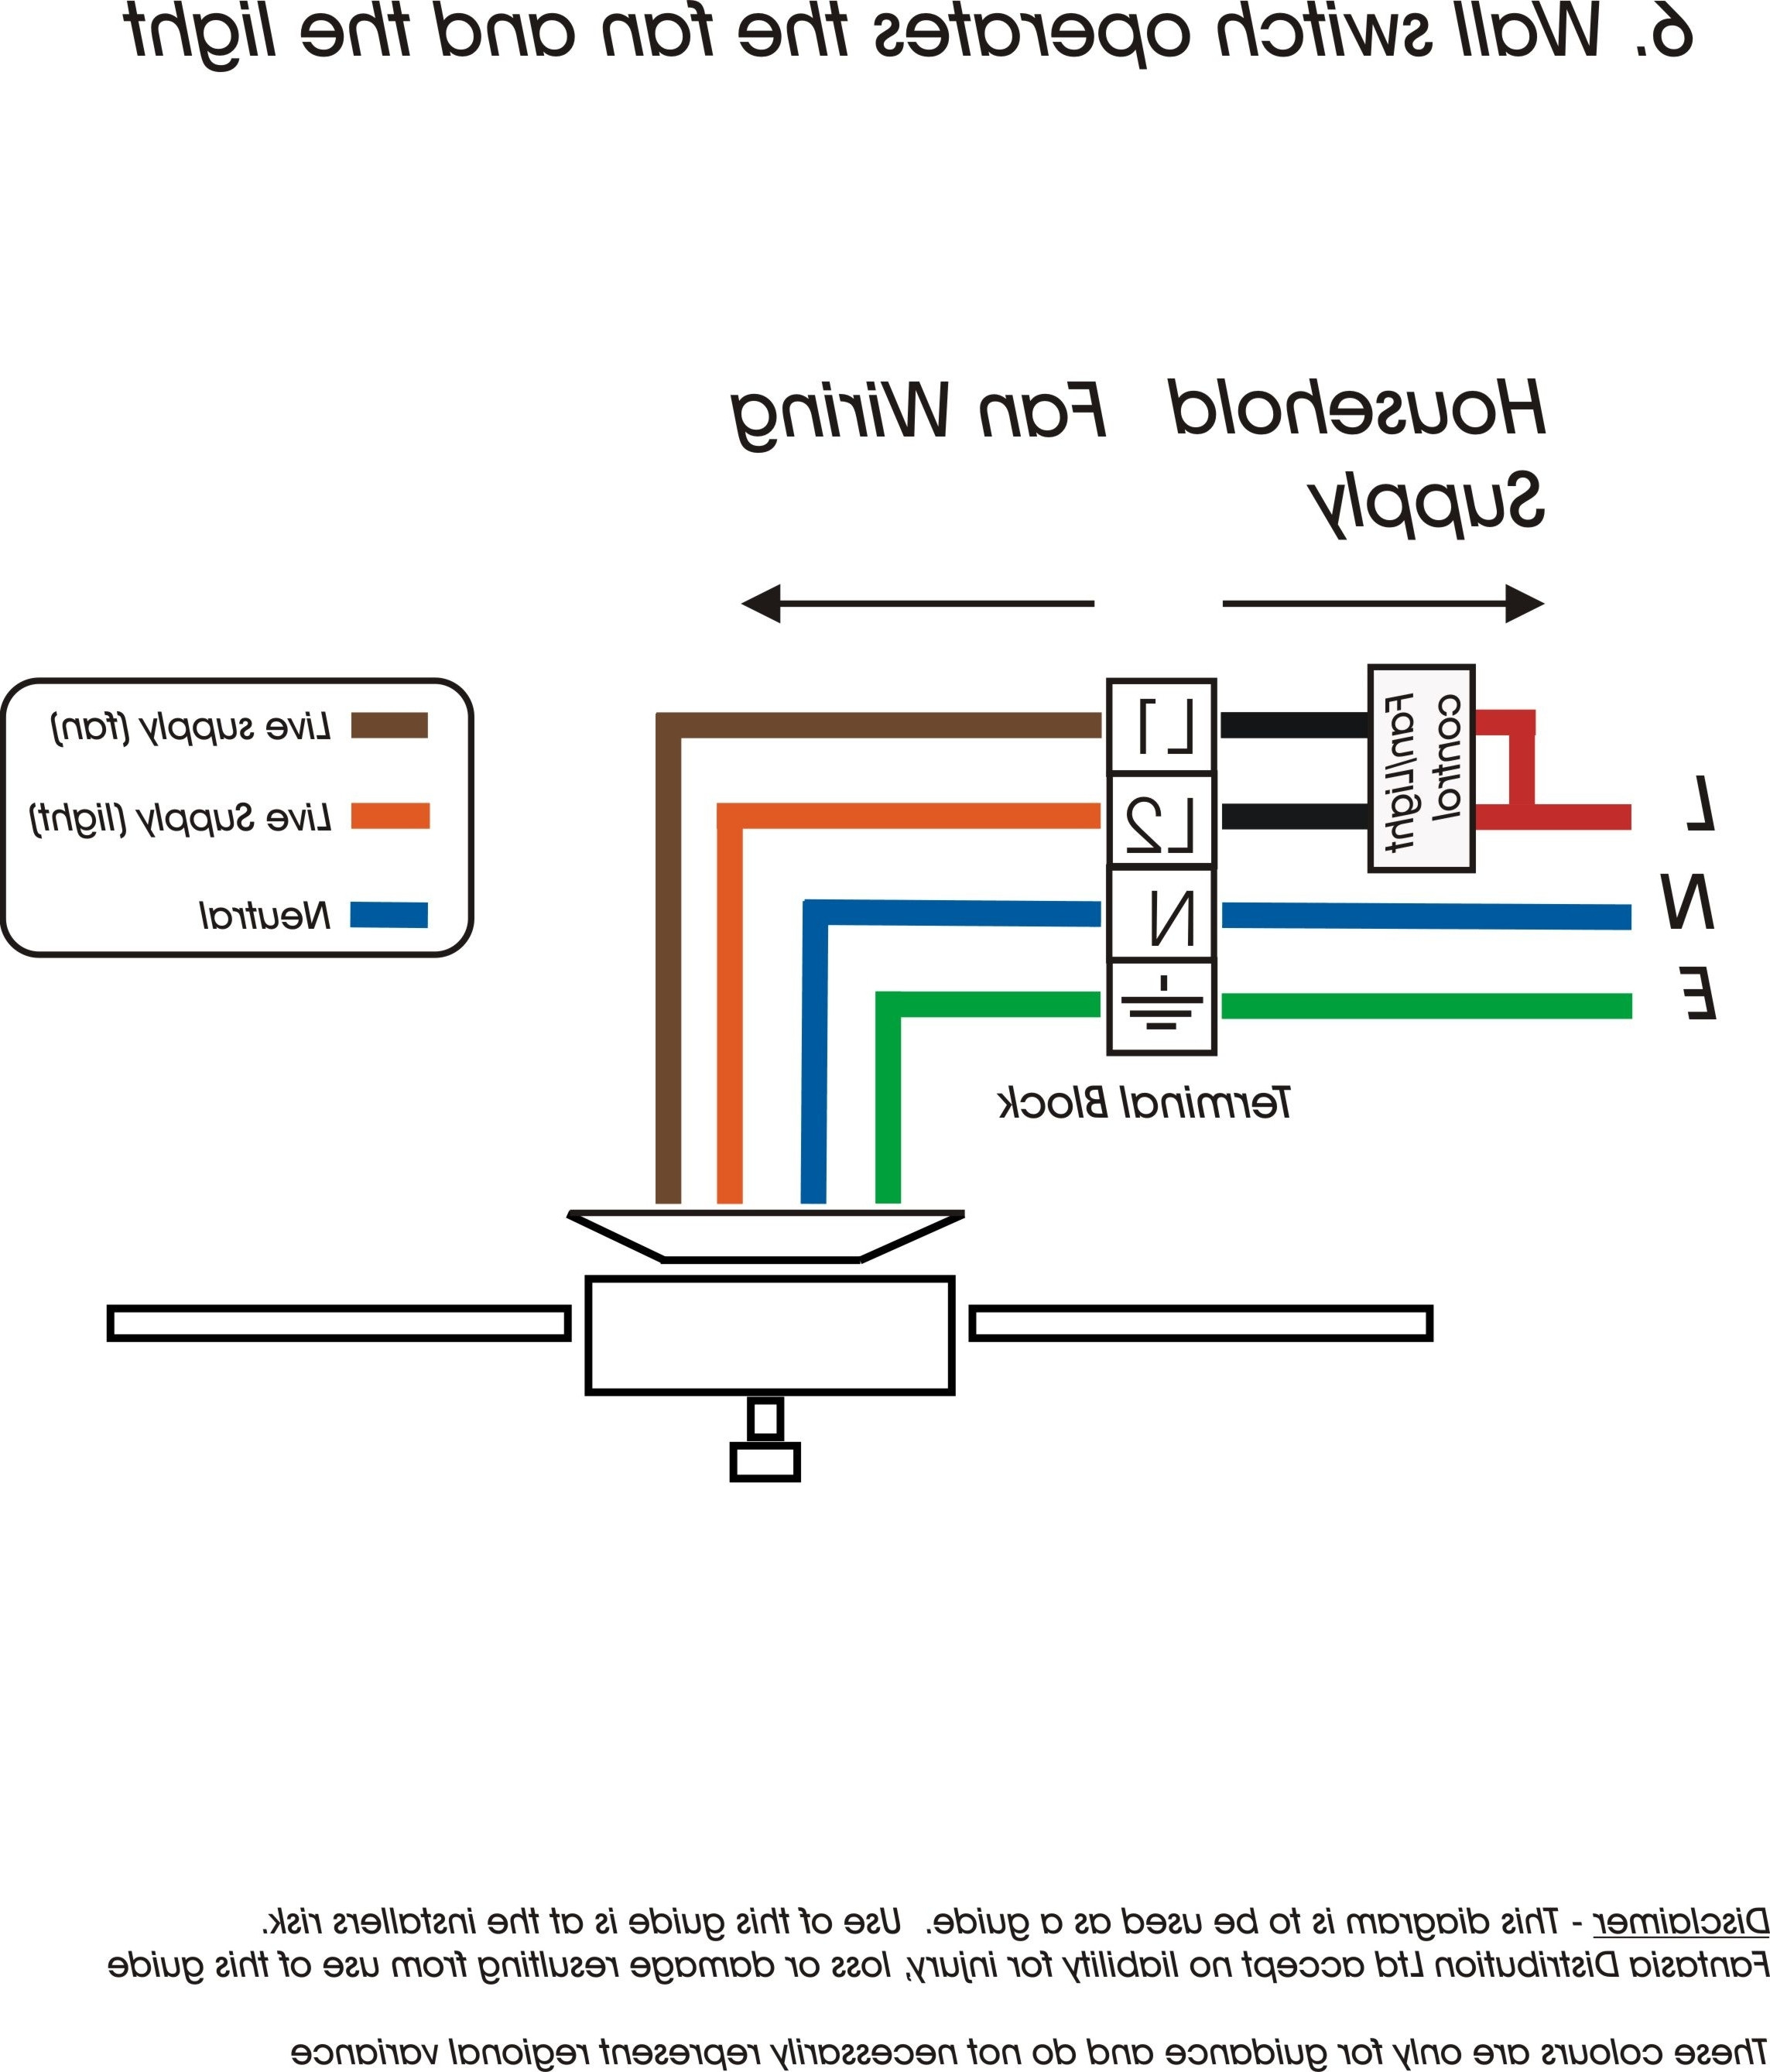 smart car wiring diagram Download-Wiring Diagram For Smart Car Valid 3 Speed Ceiling Fan Switch Wiring Diagram Elvenlabs Entrancing 1-t